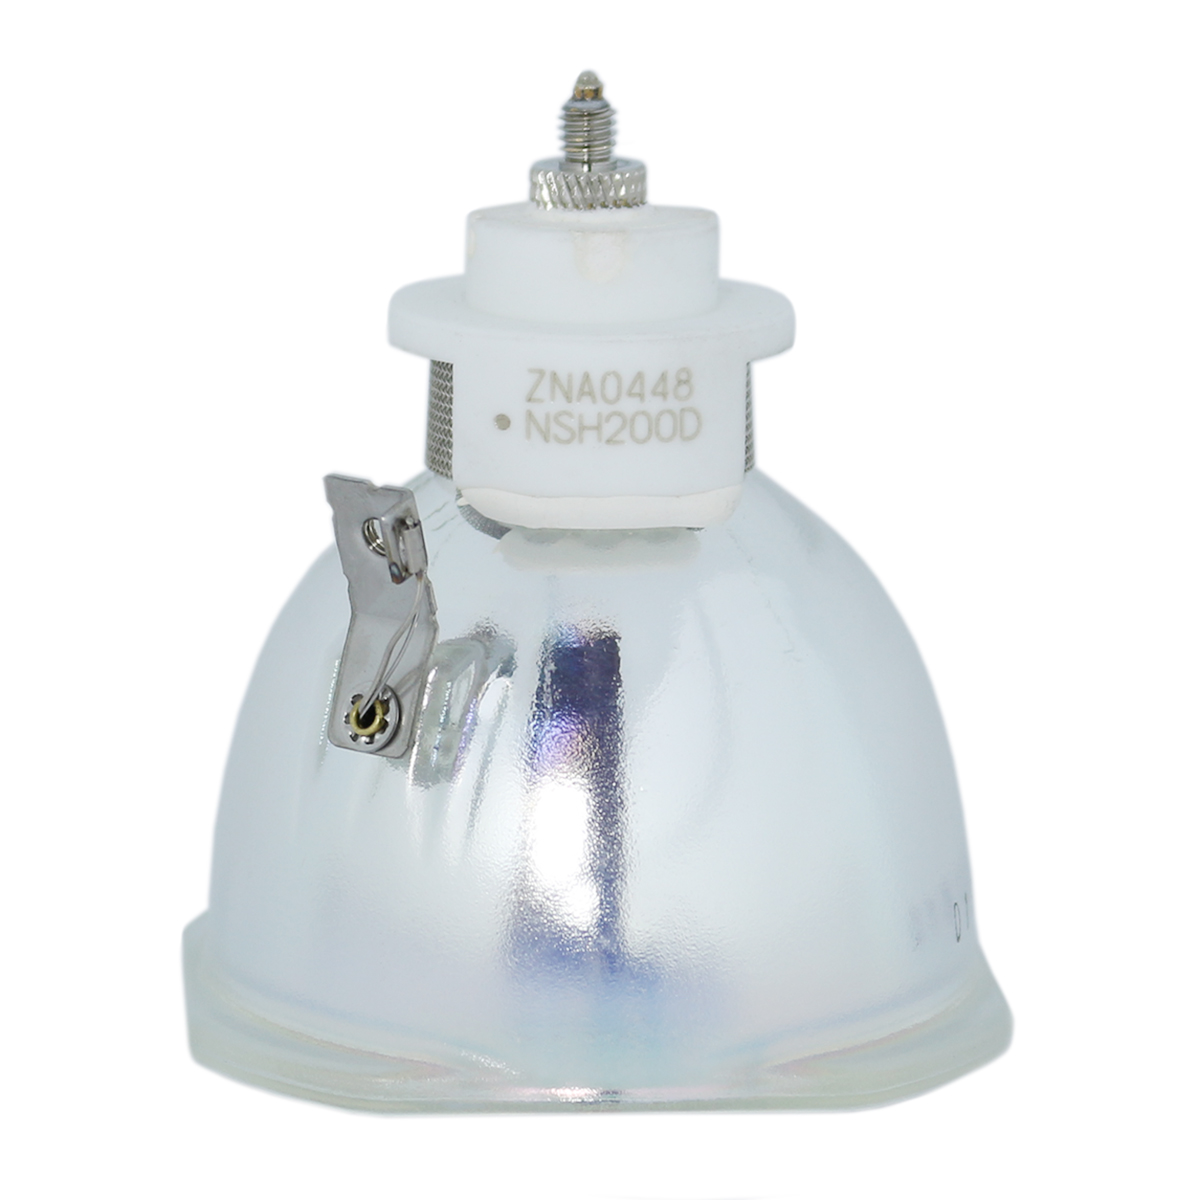 Lutema Platinum Bulb for Vidikron Vision Model 20ET Projector (Lamp Only) - image 2 of 5